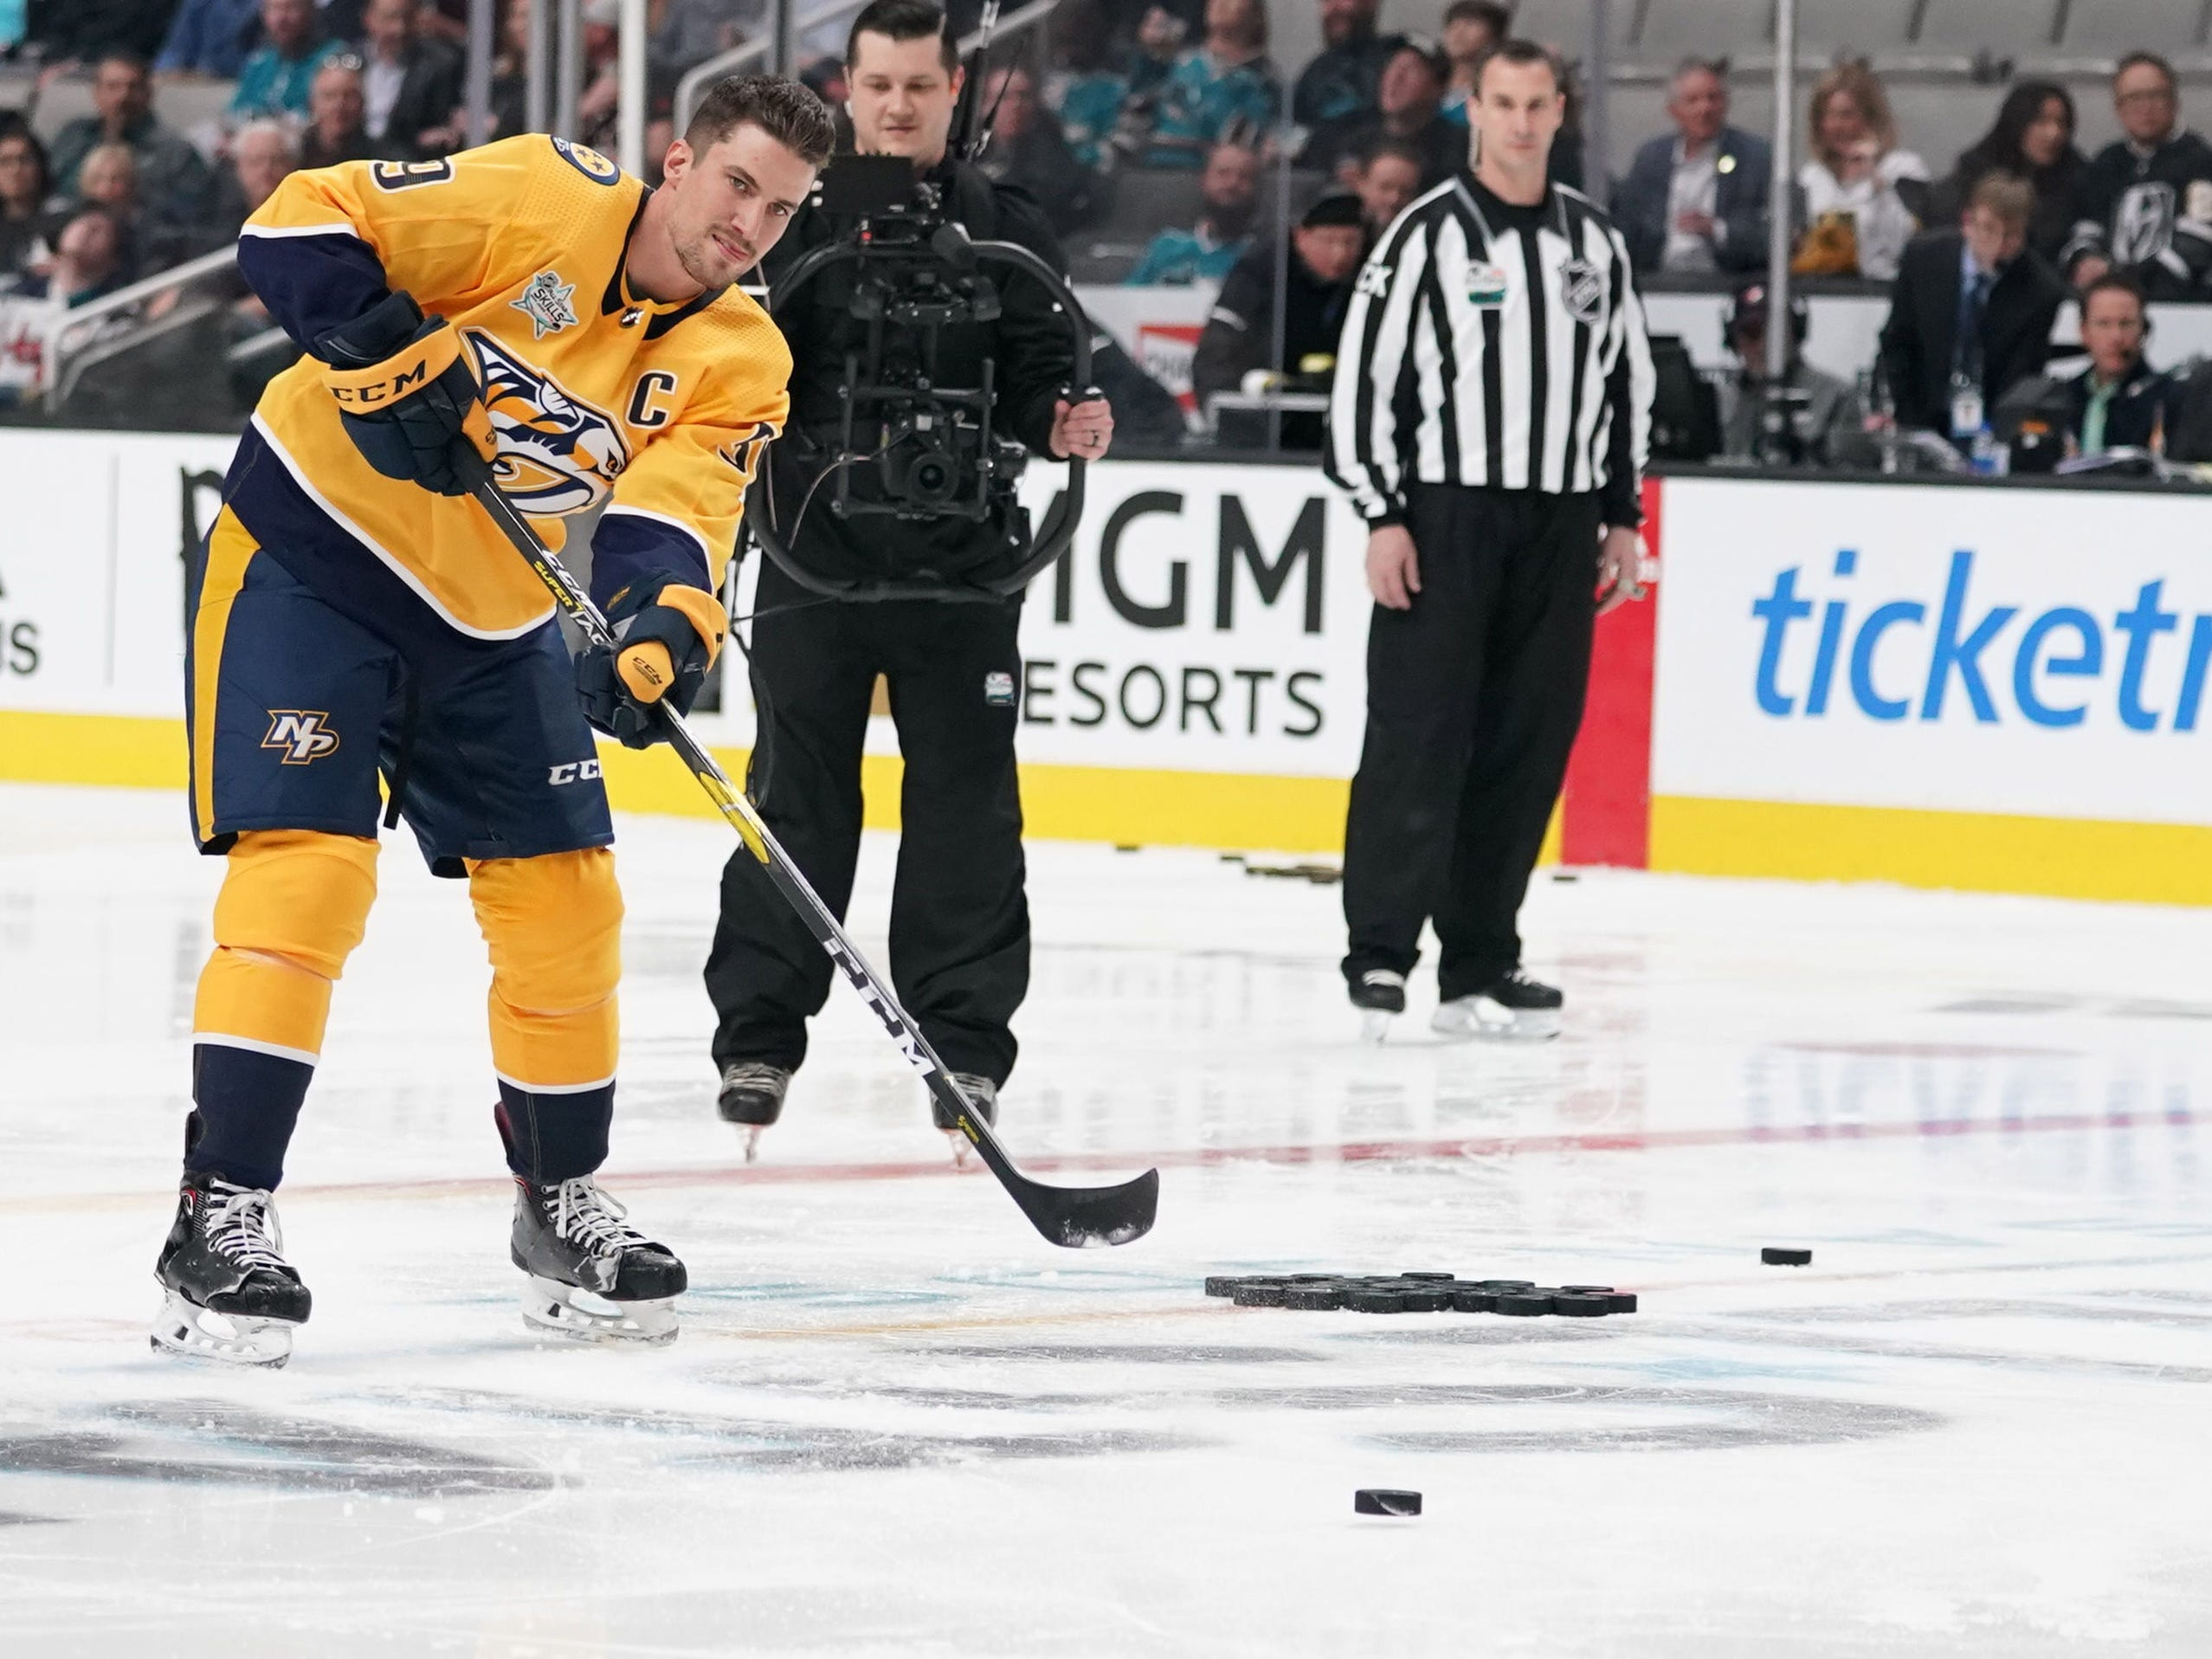 Central Division player Roman Josi (59) of the Nashville Predators in the premier passer competition in the 2019 NHL All Star Game skills competition at SAP Center in San Jose, Calif., on Jan. 25, 2019.